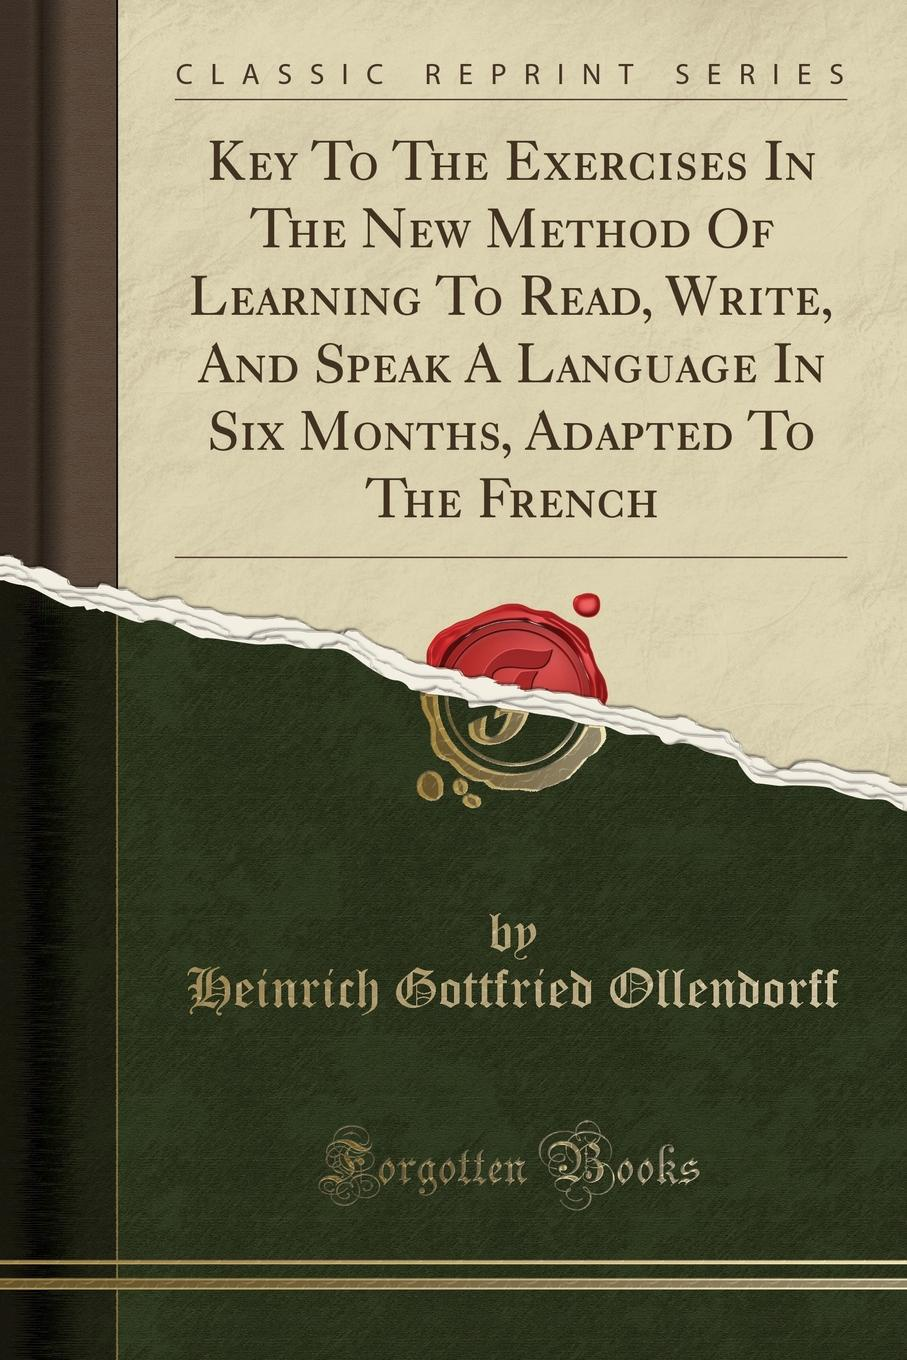 Heinrich Gottfried Ollendorff Key To The Exercises In The New Method Of Learning To Read, Write, And Speak A Language In Six Months, Adapted To The French (Classic Reprint) недорого